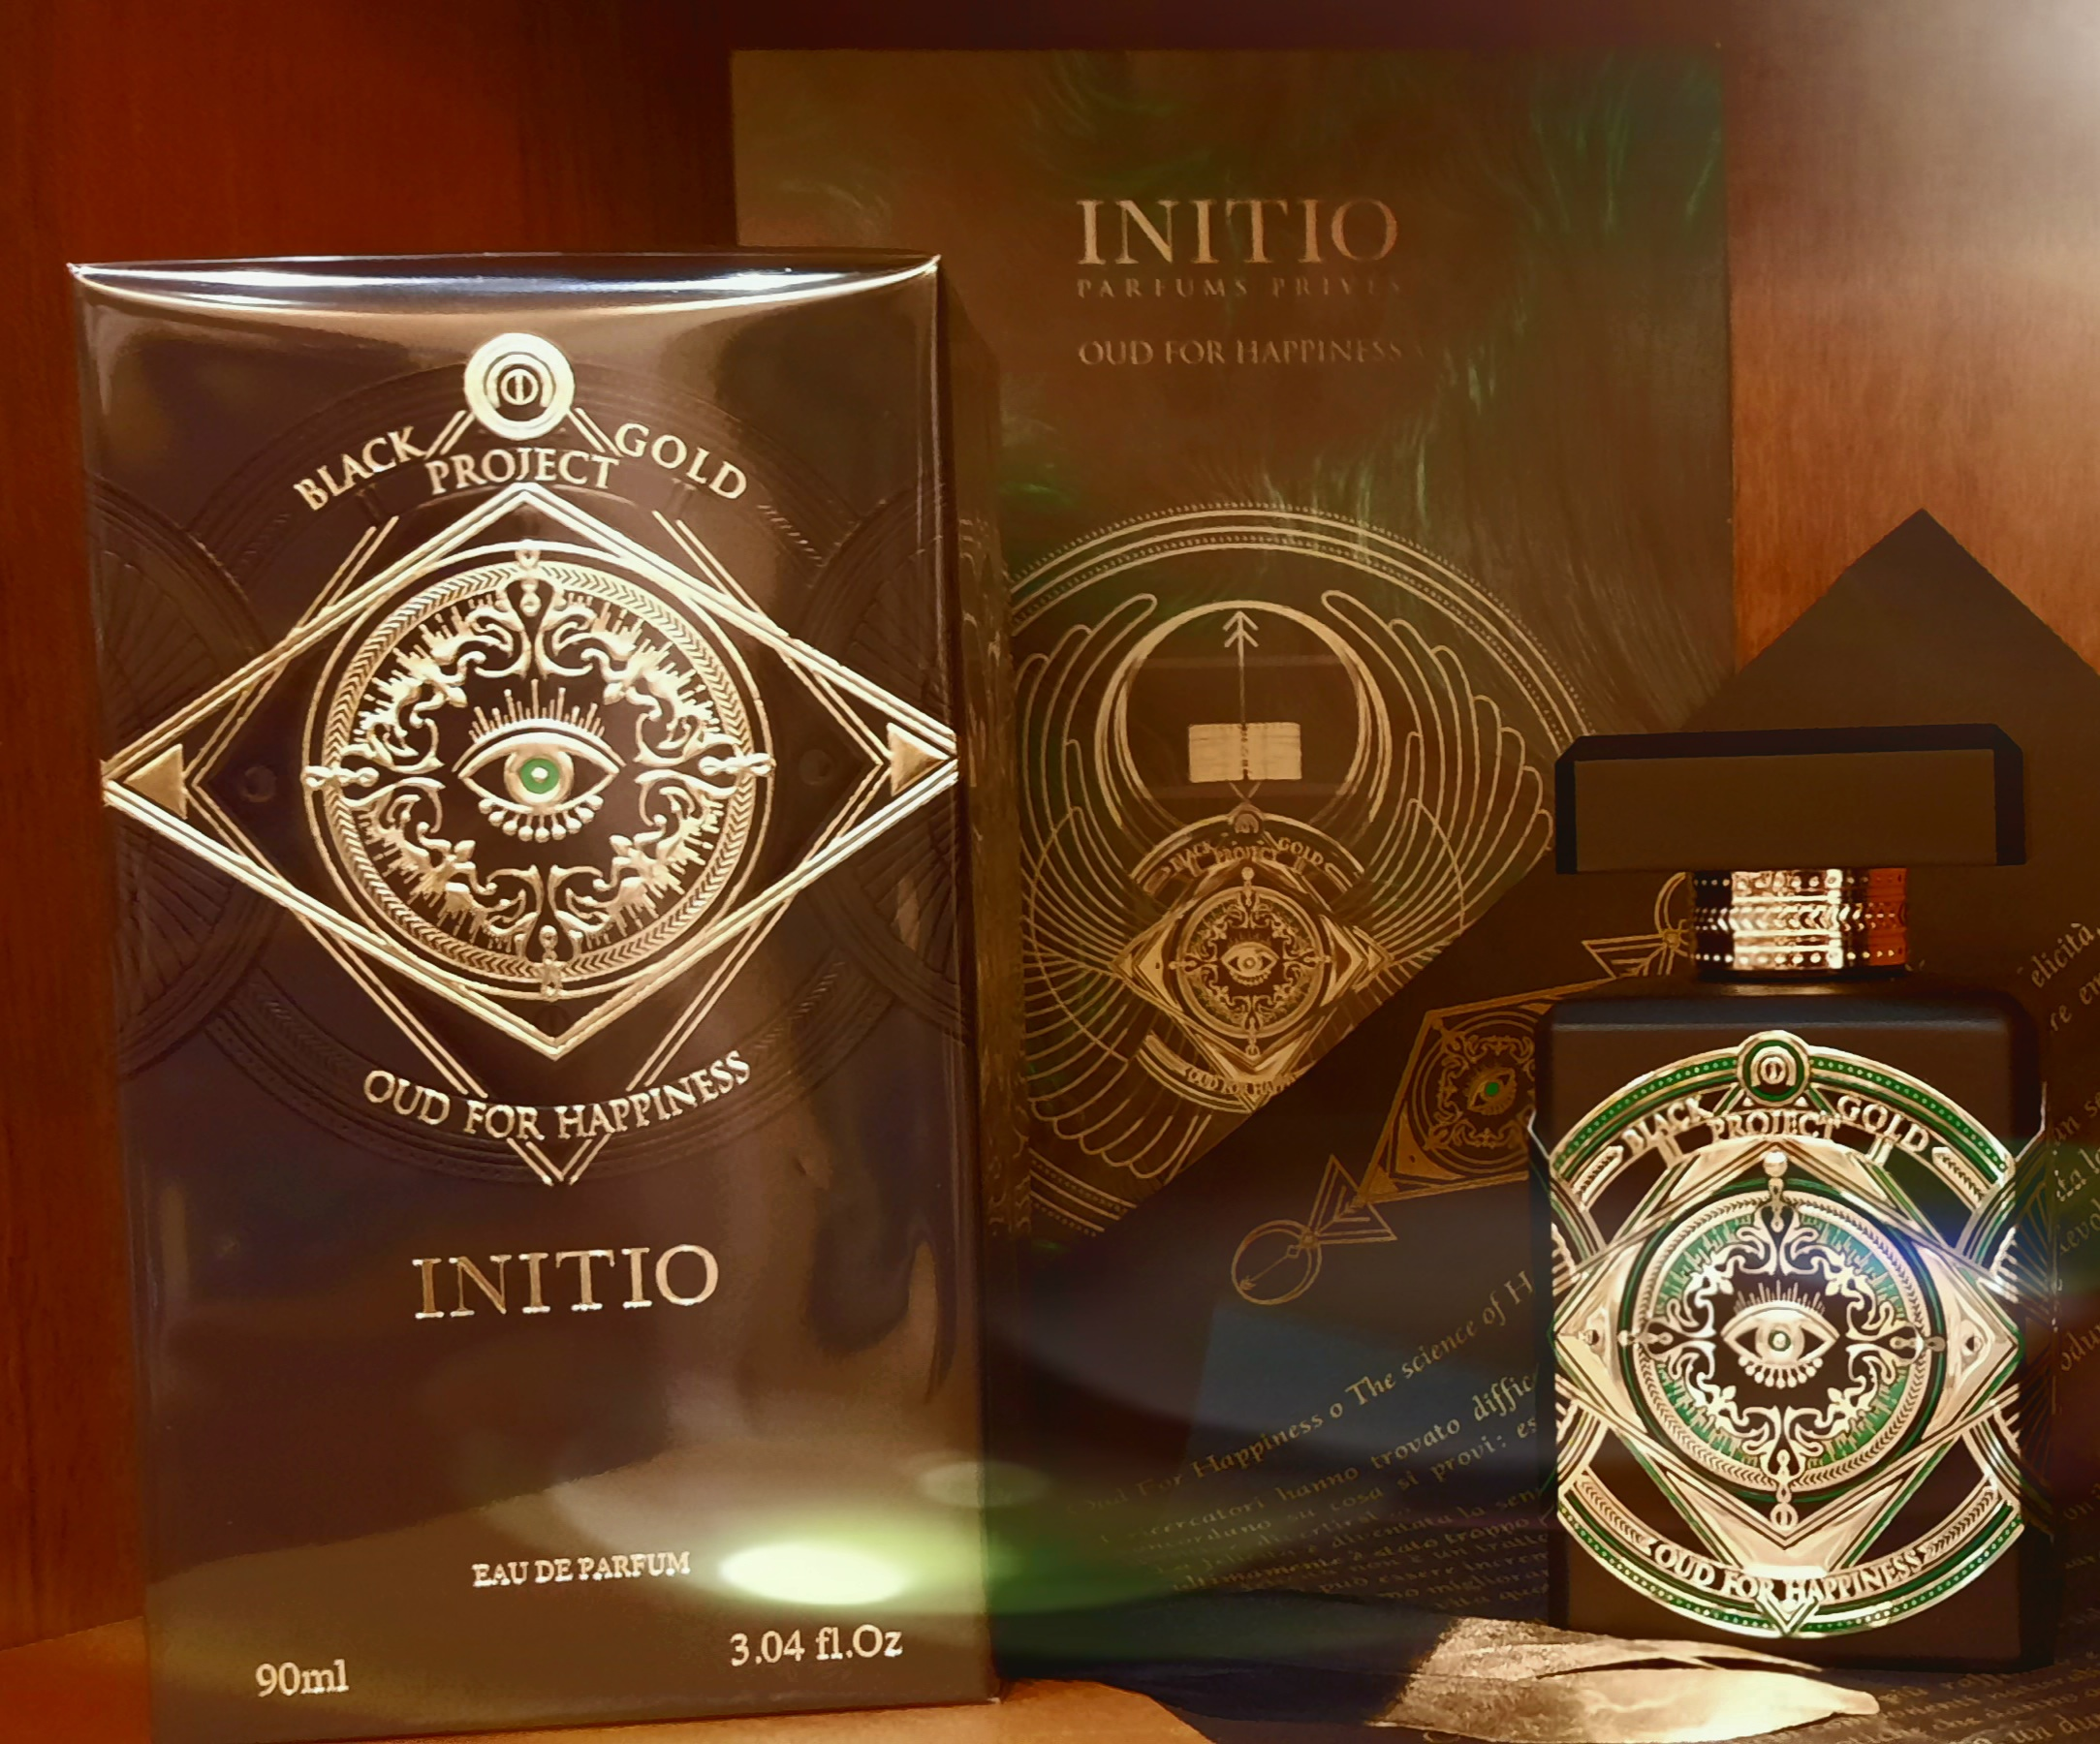 Initio - Oud for Happiness